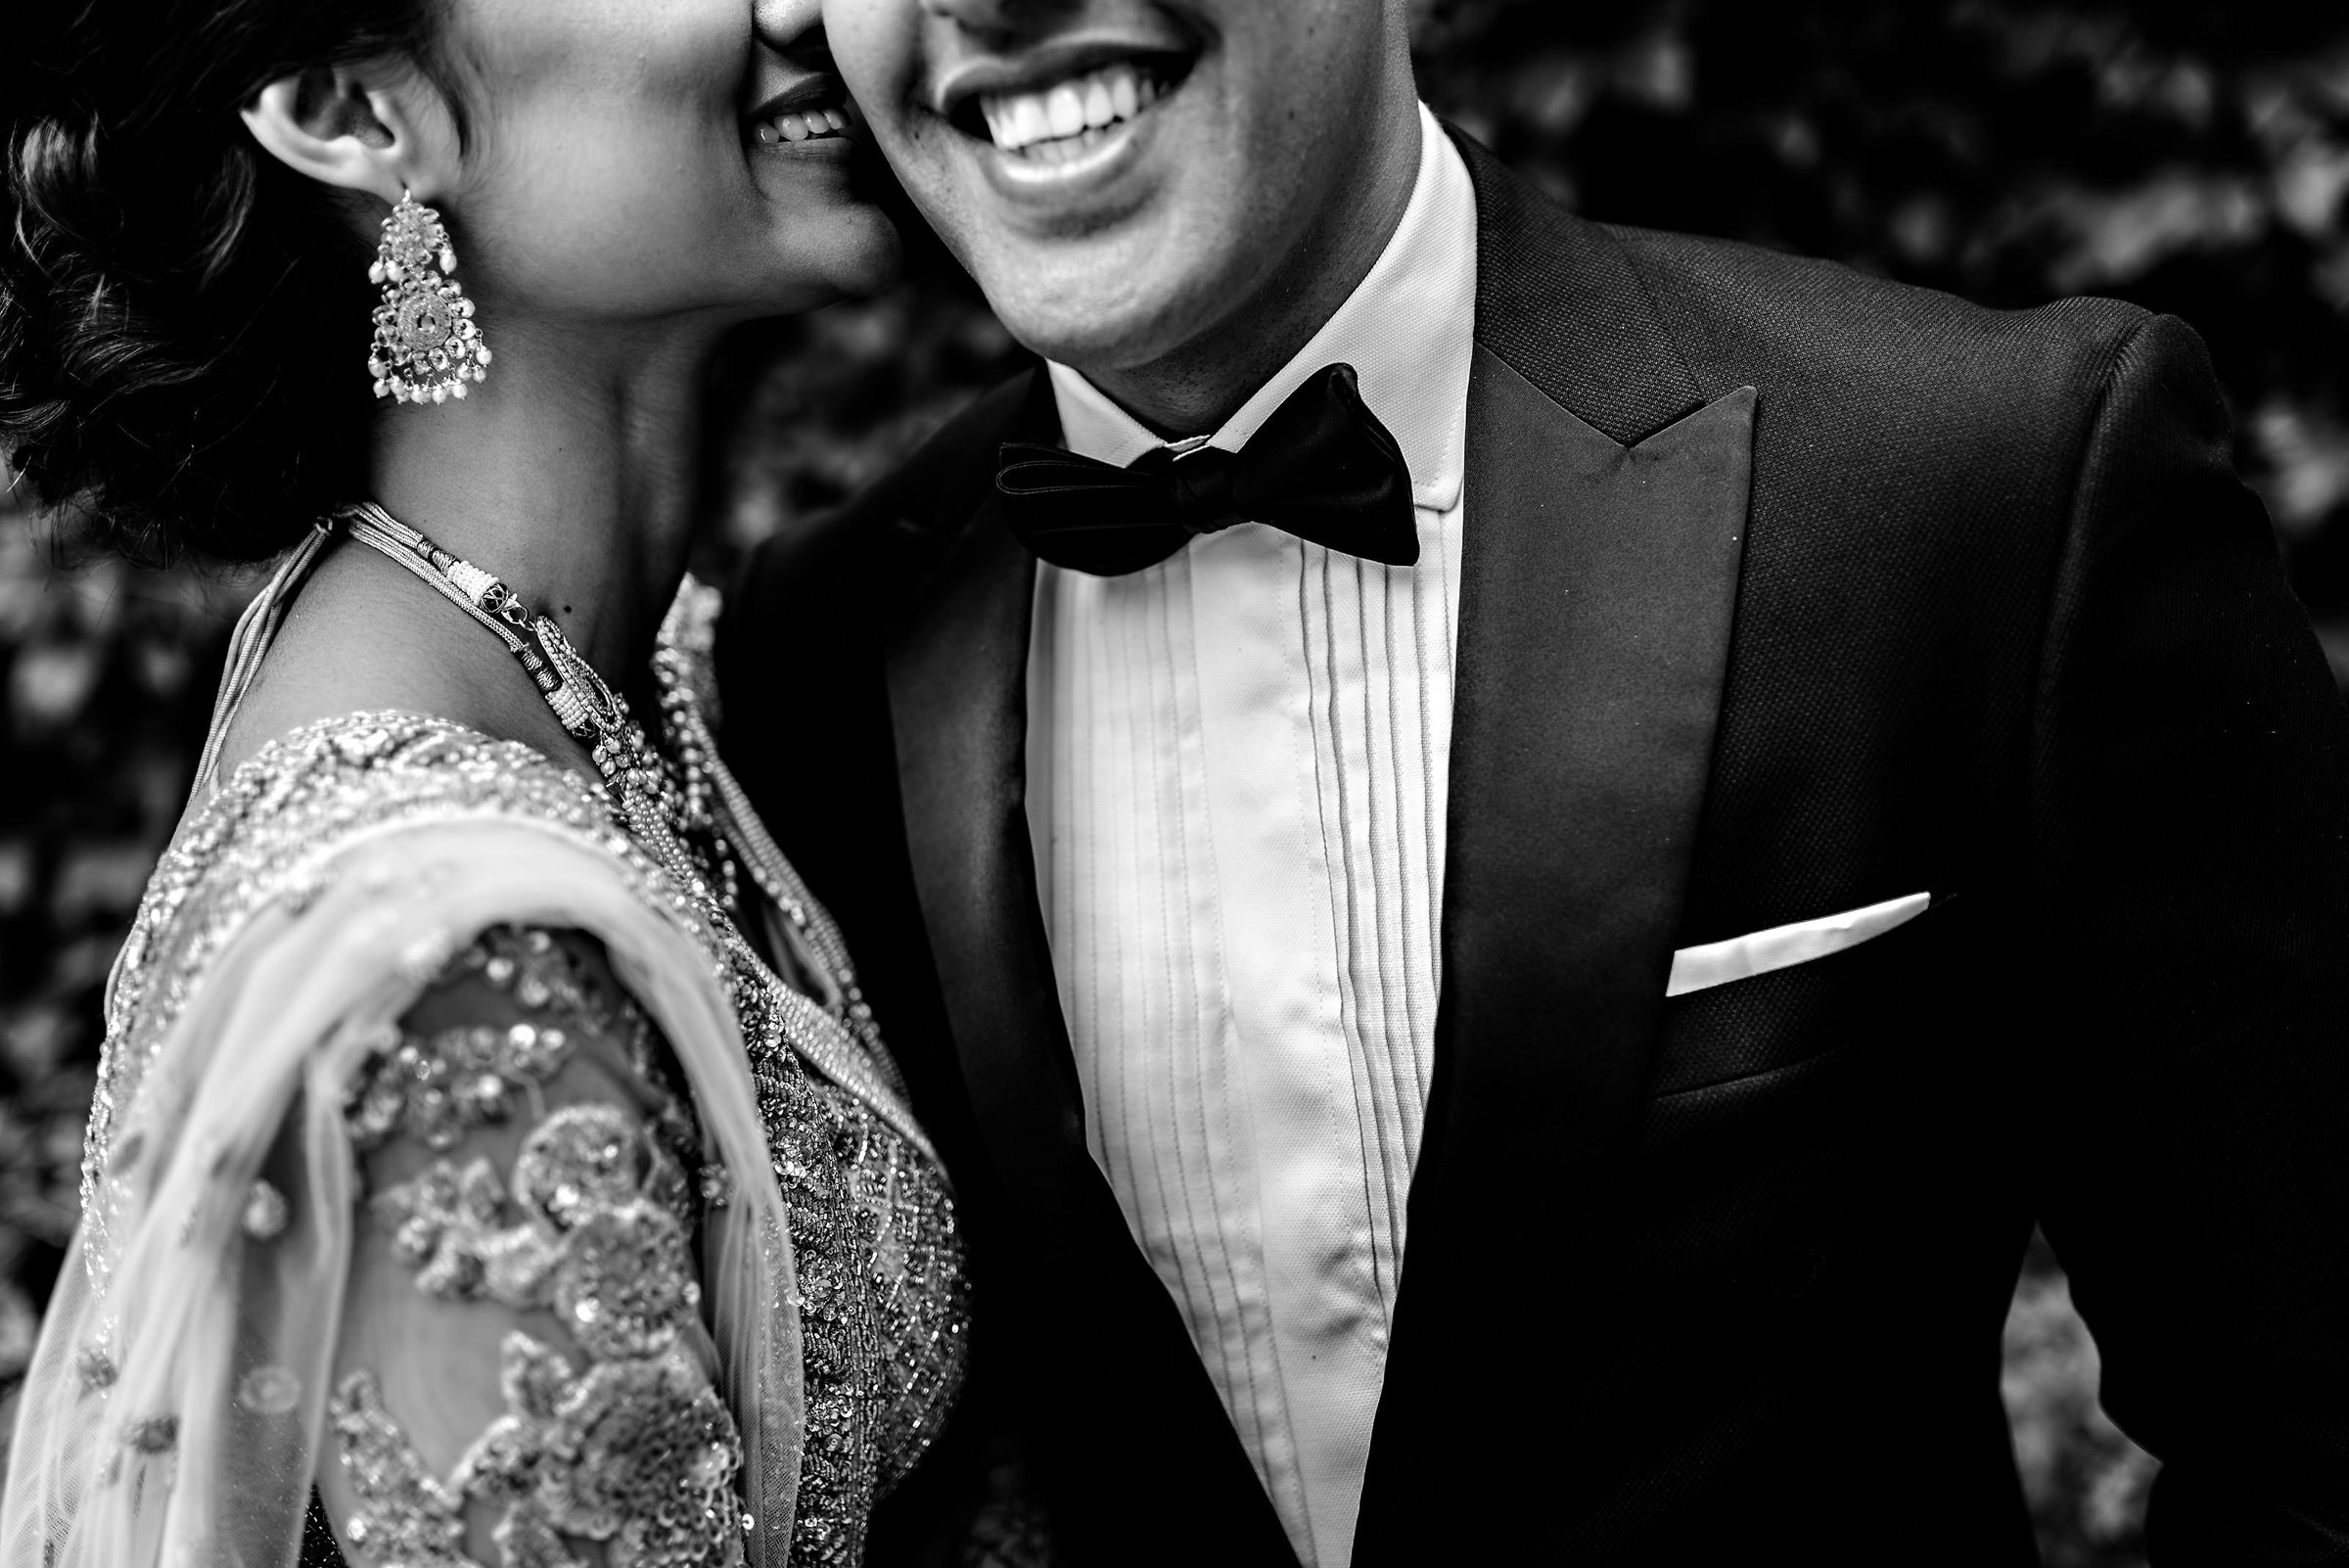 bride-and-groom-closeup-portrait-moore-photography